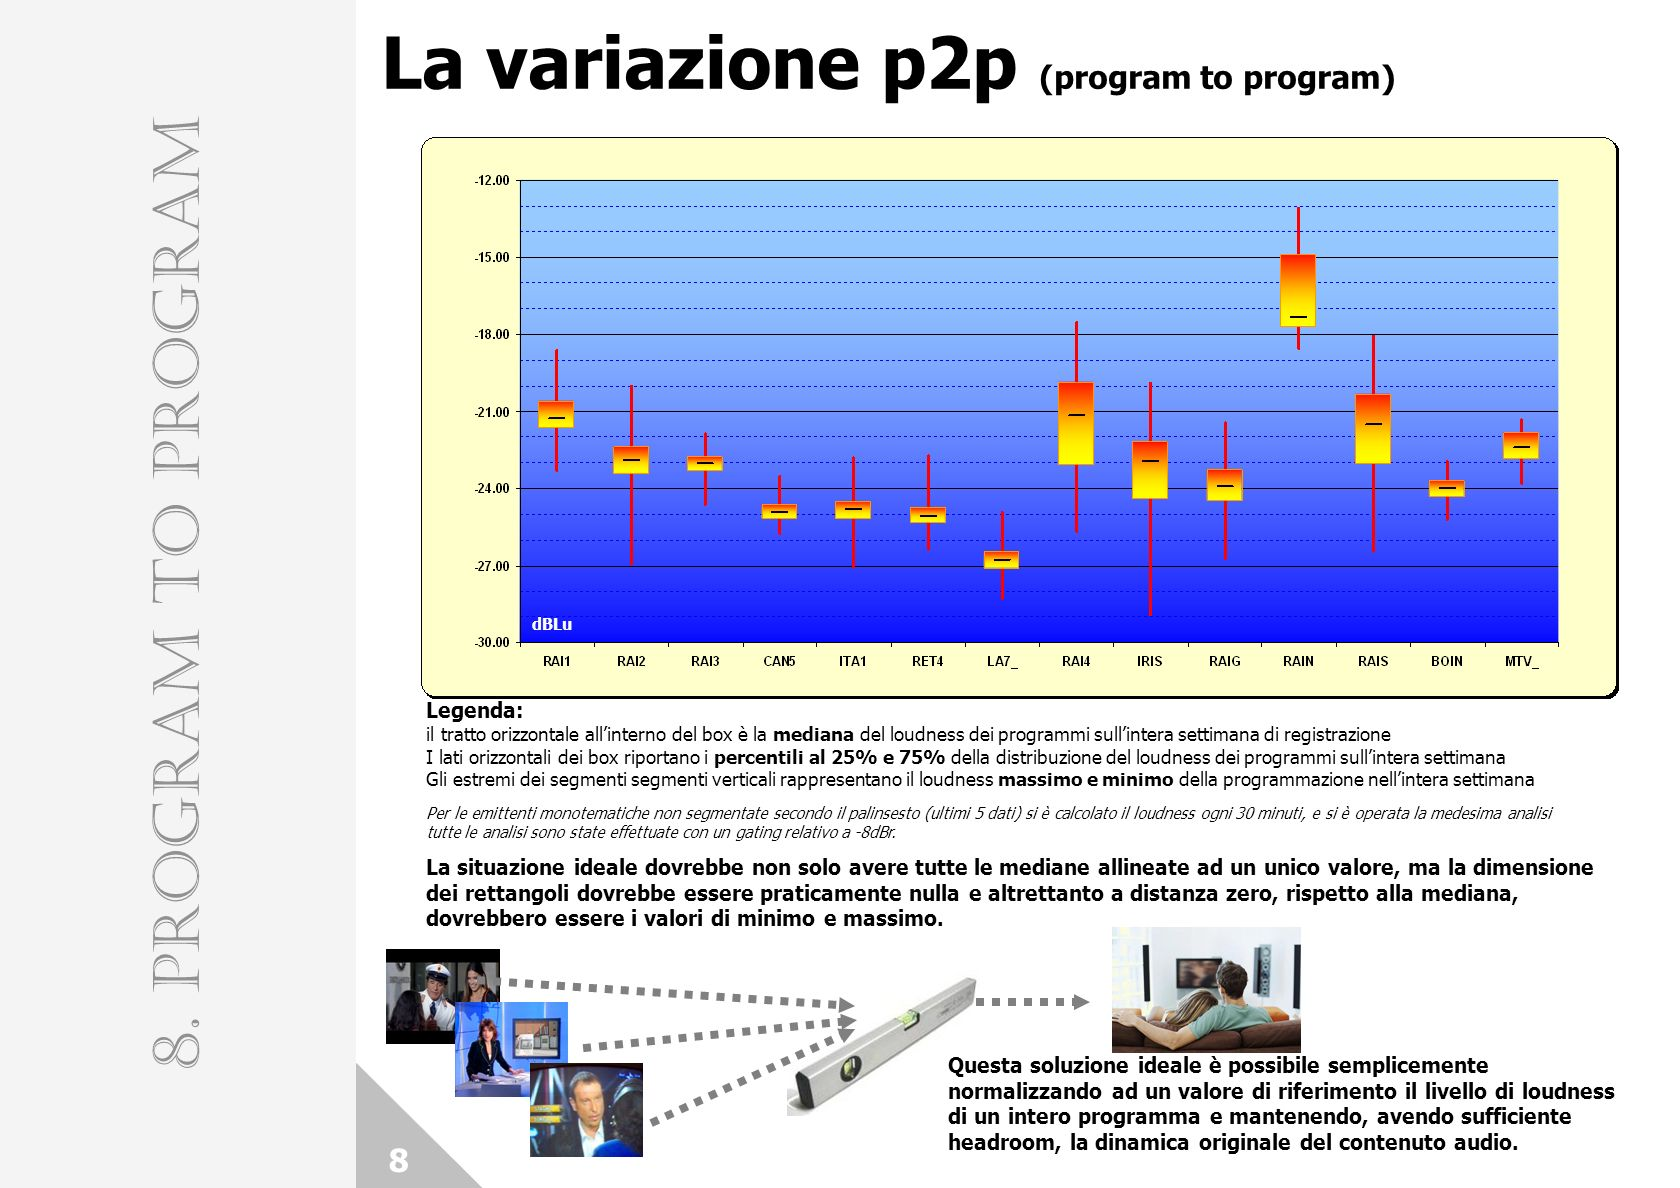 La variazione p2p (program to program)